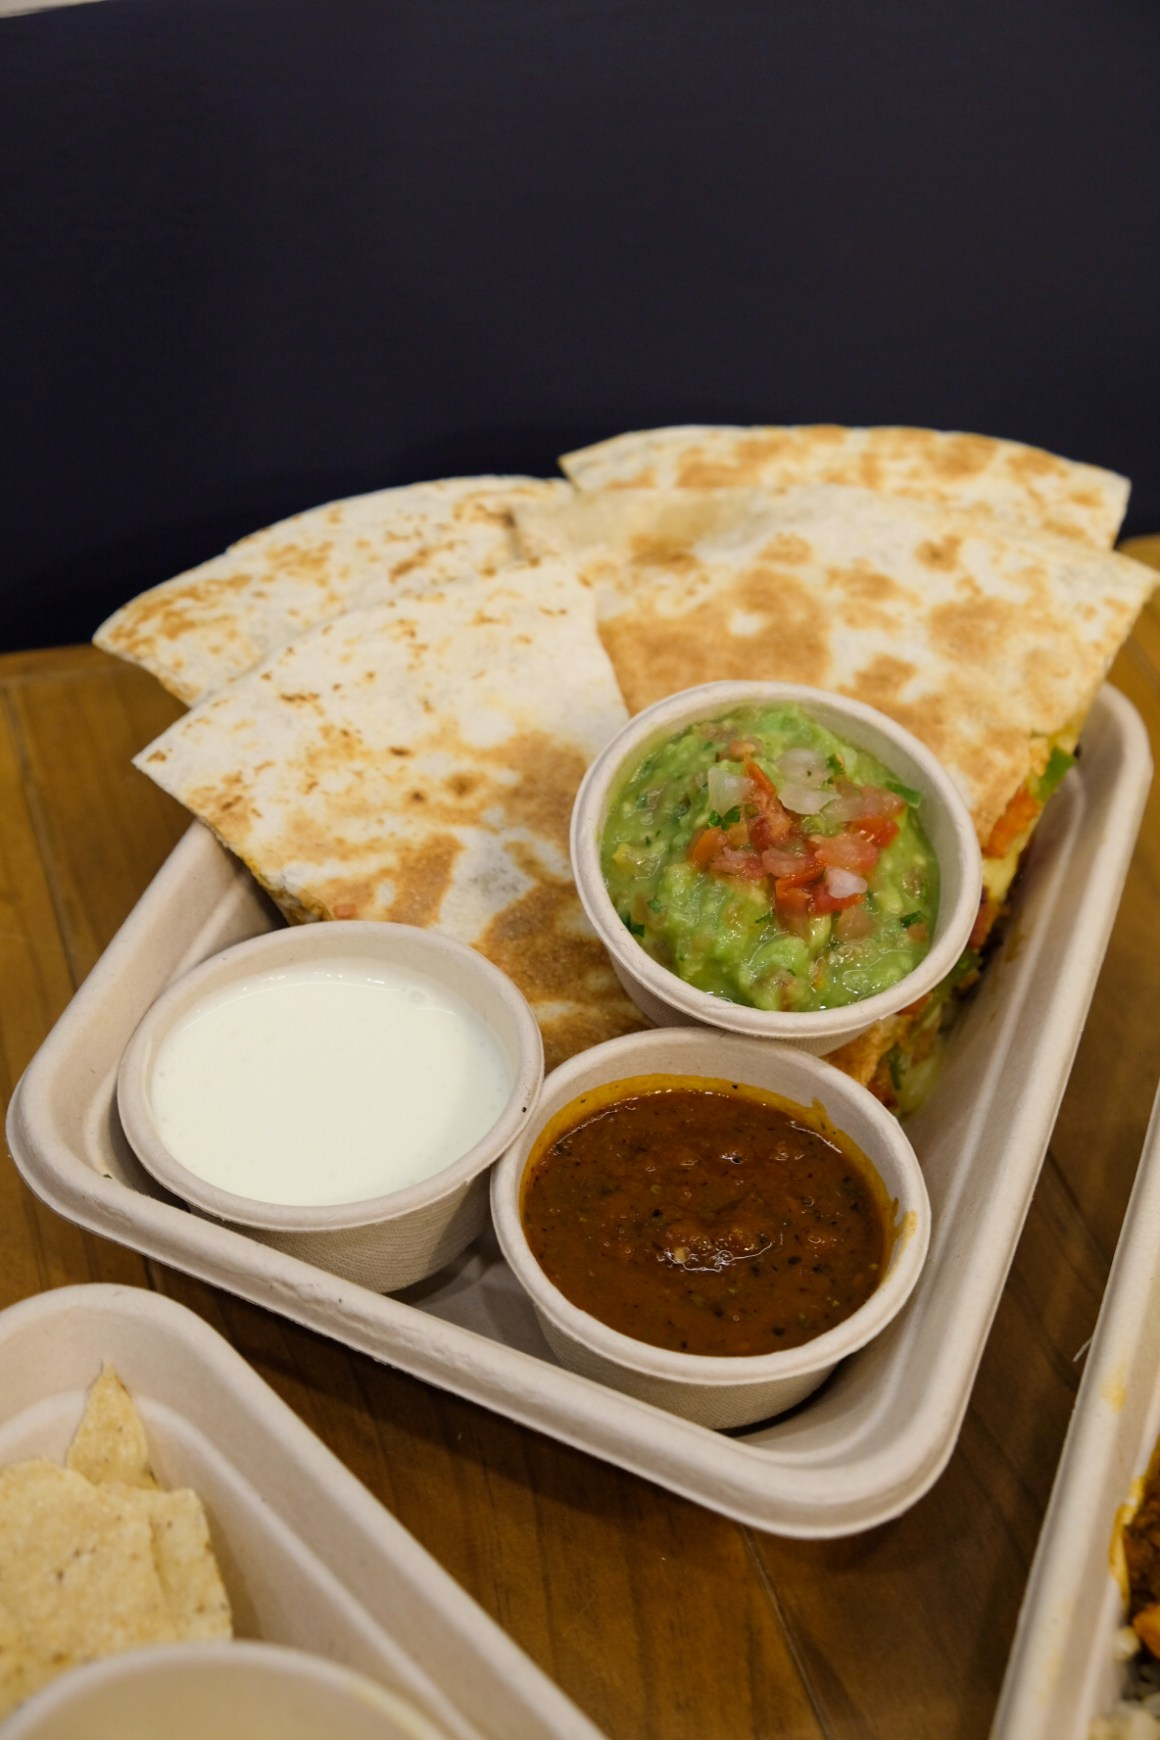 Mad Mex Mexican Food At MBFC Tower 3 - Quesadilla ($11.50 - regular)